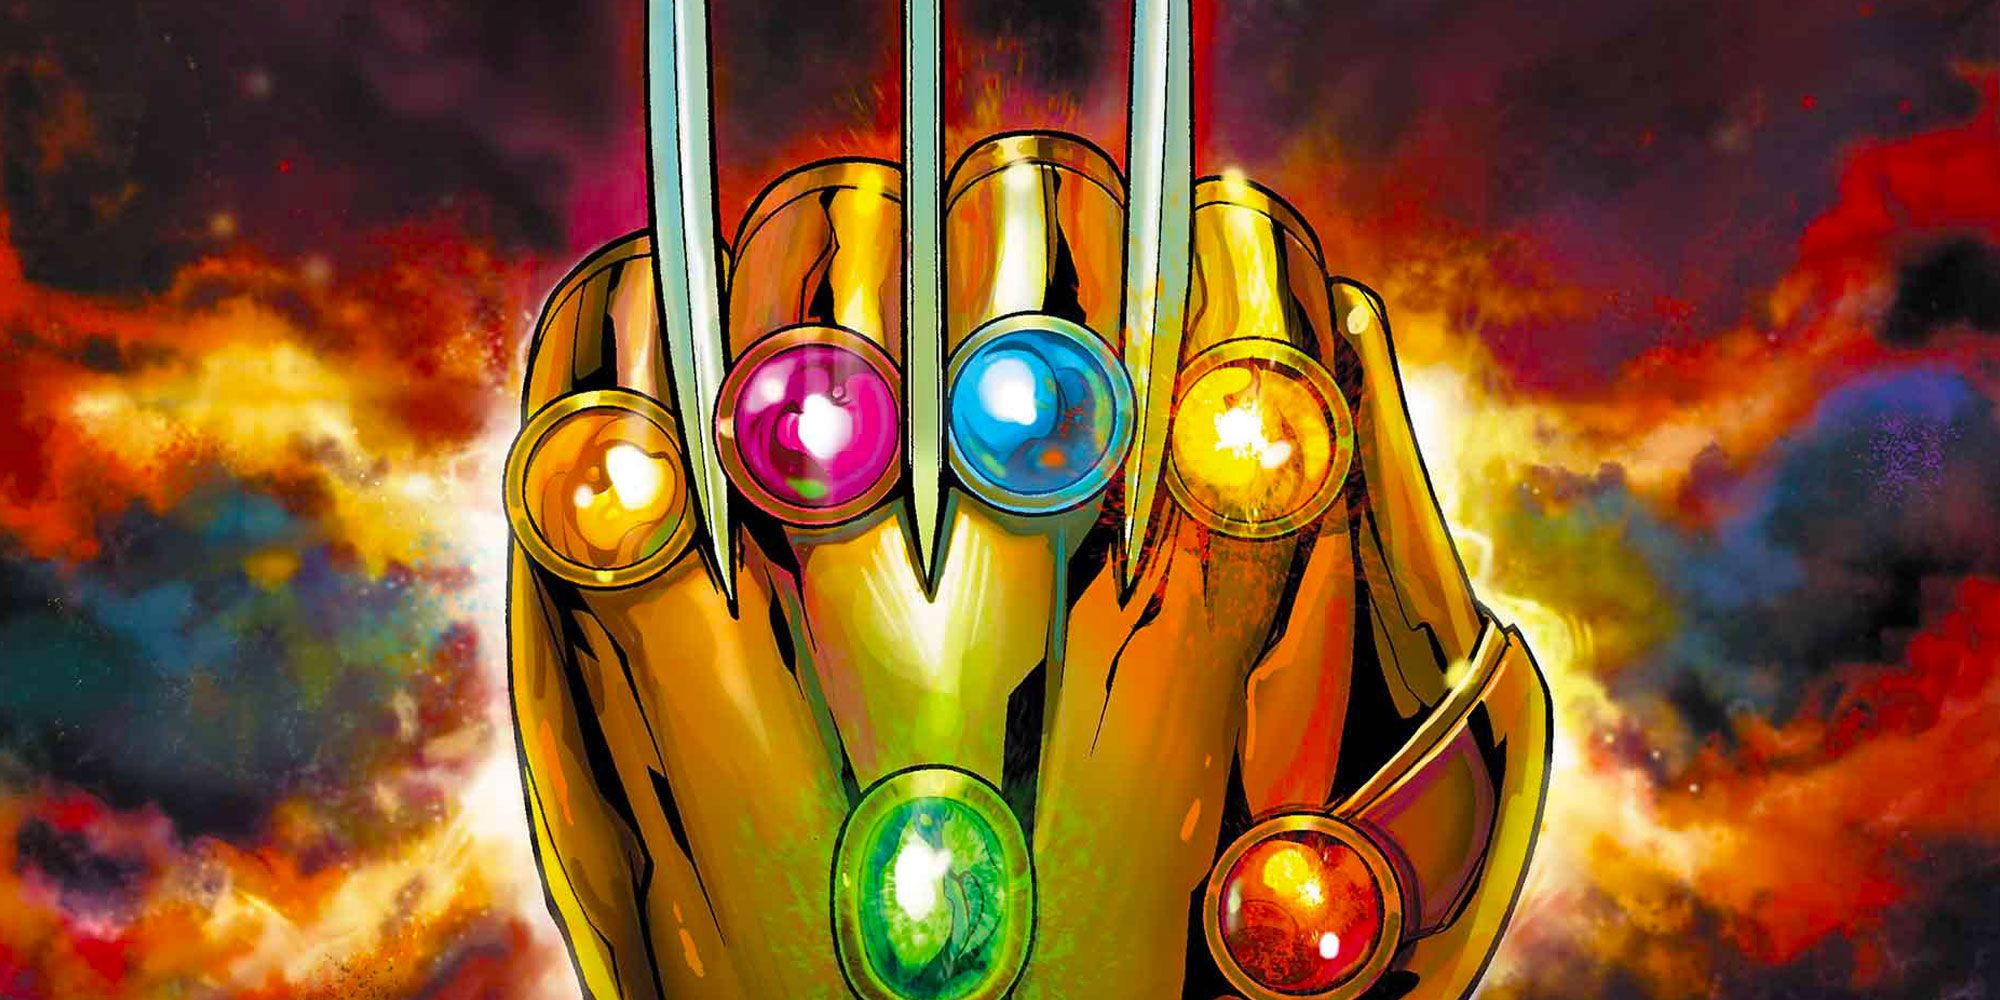 Marvel Teases Wolverine Wearing the Infinity Gauntlet in 2019